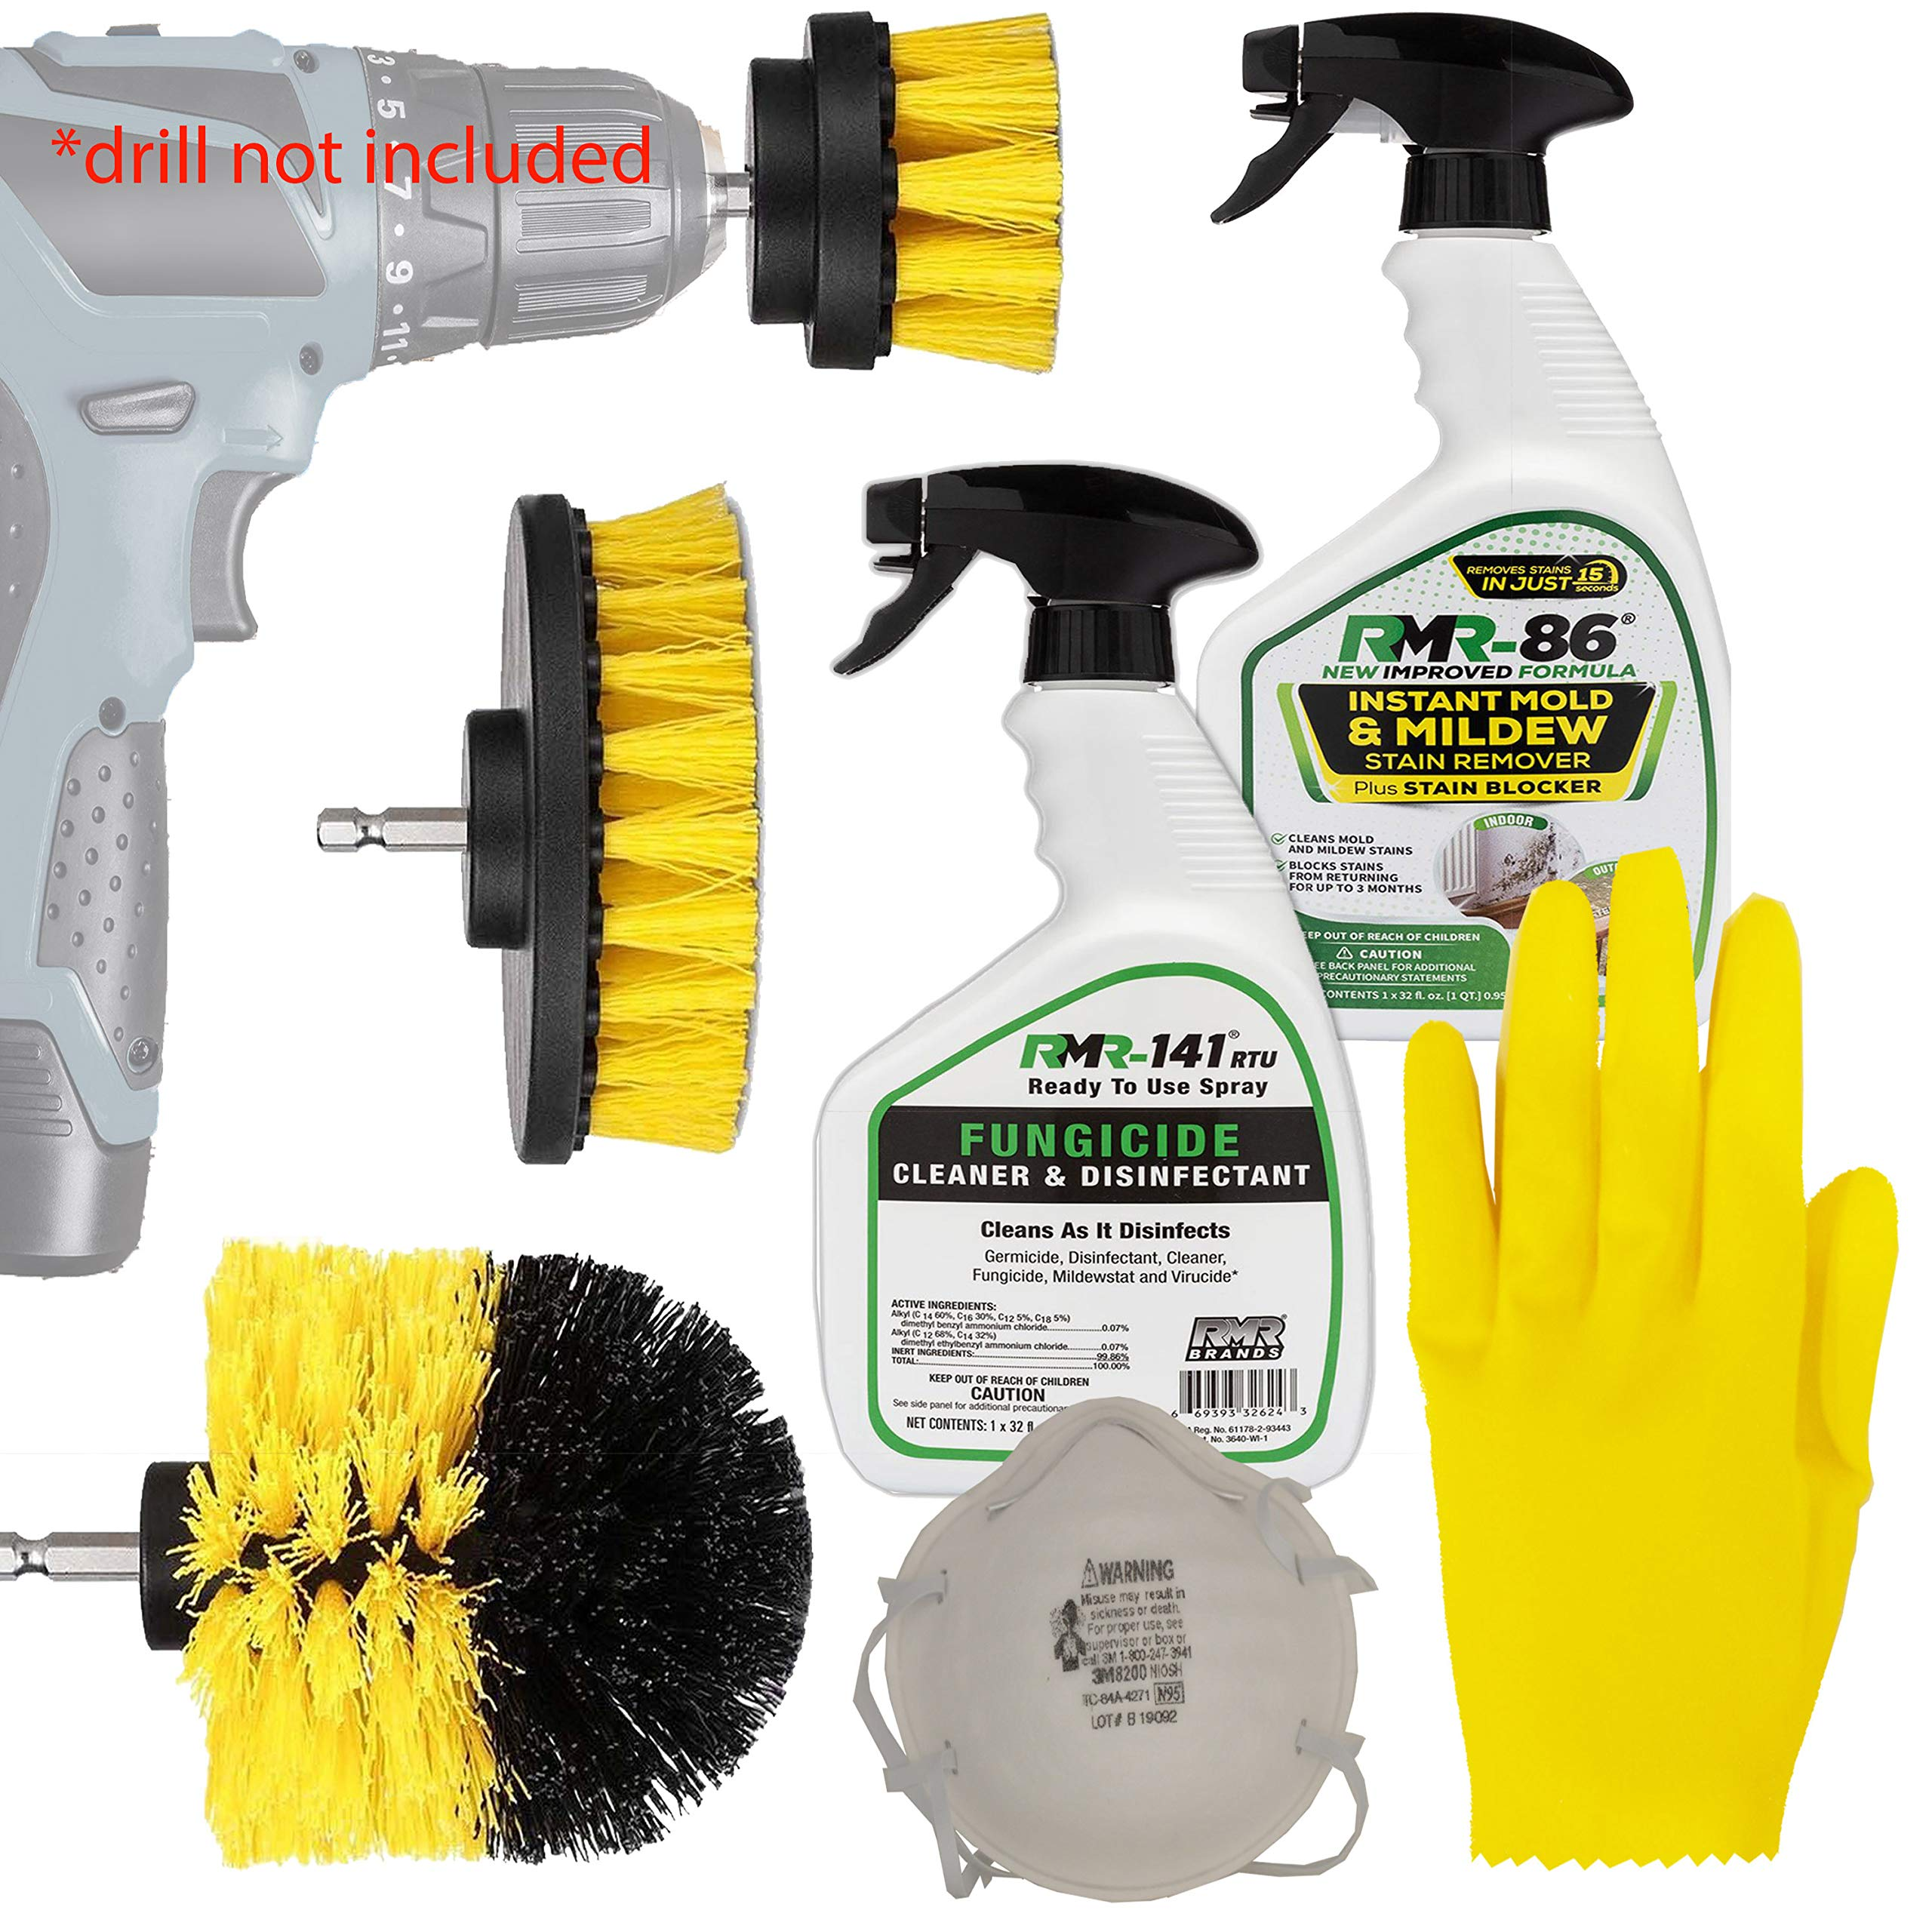 Complete RMR 86 Brands Mold Remover Kit: RMR 141 Black and Mildew Killer Removal Spray, RMR86 Stain Cleaner, Drill Brush Power Scrubber Attachment Set, 3M N95 Particle Respirator Mask, Thick Gloves. by HeroFiber